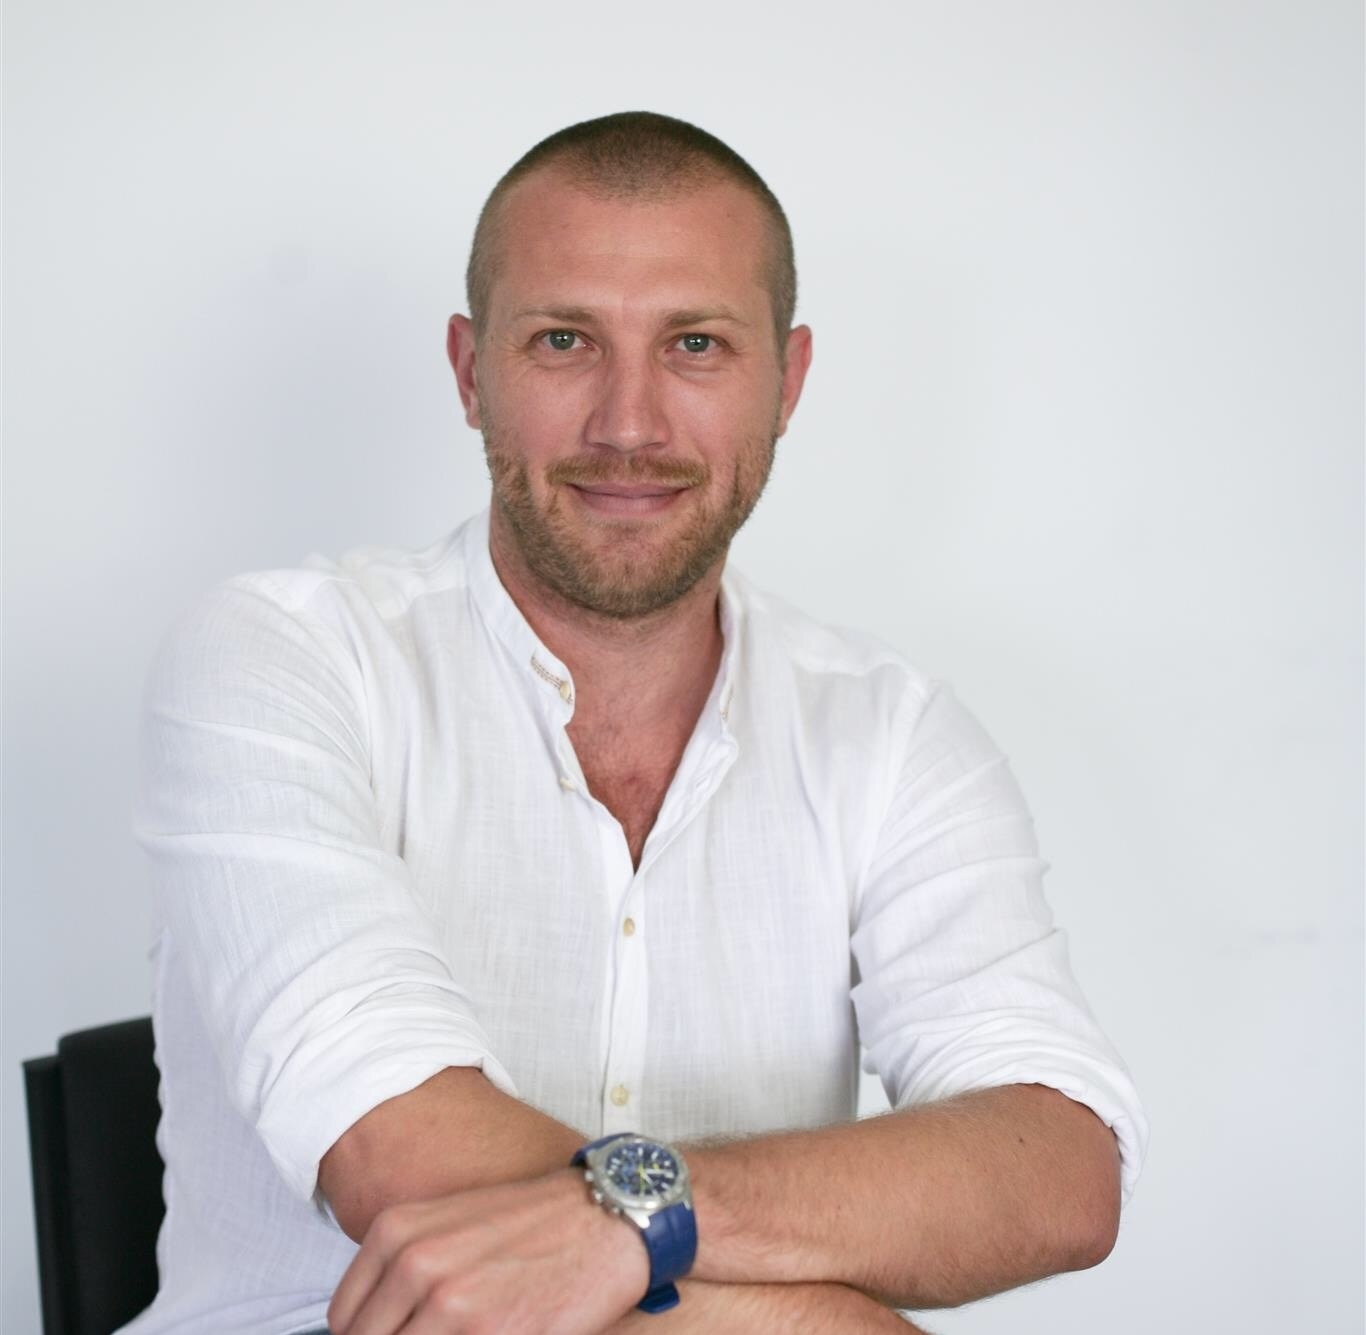 Oleksandr Grachov - Director of Regulatory Affairs